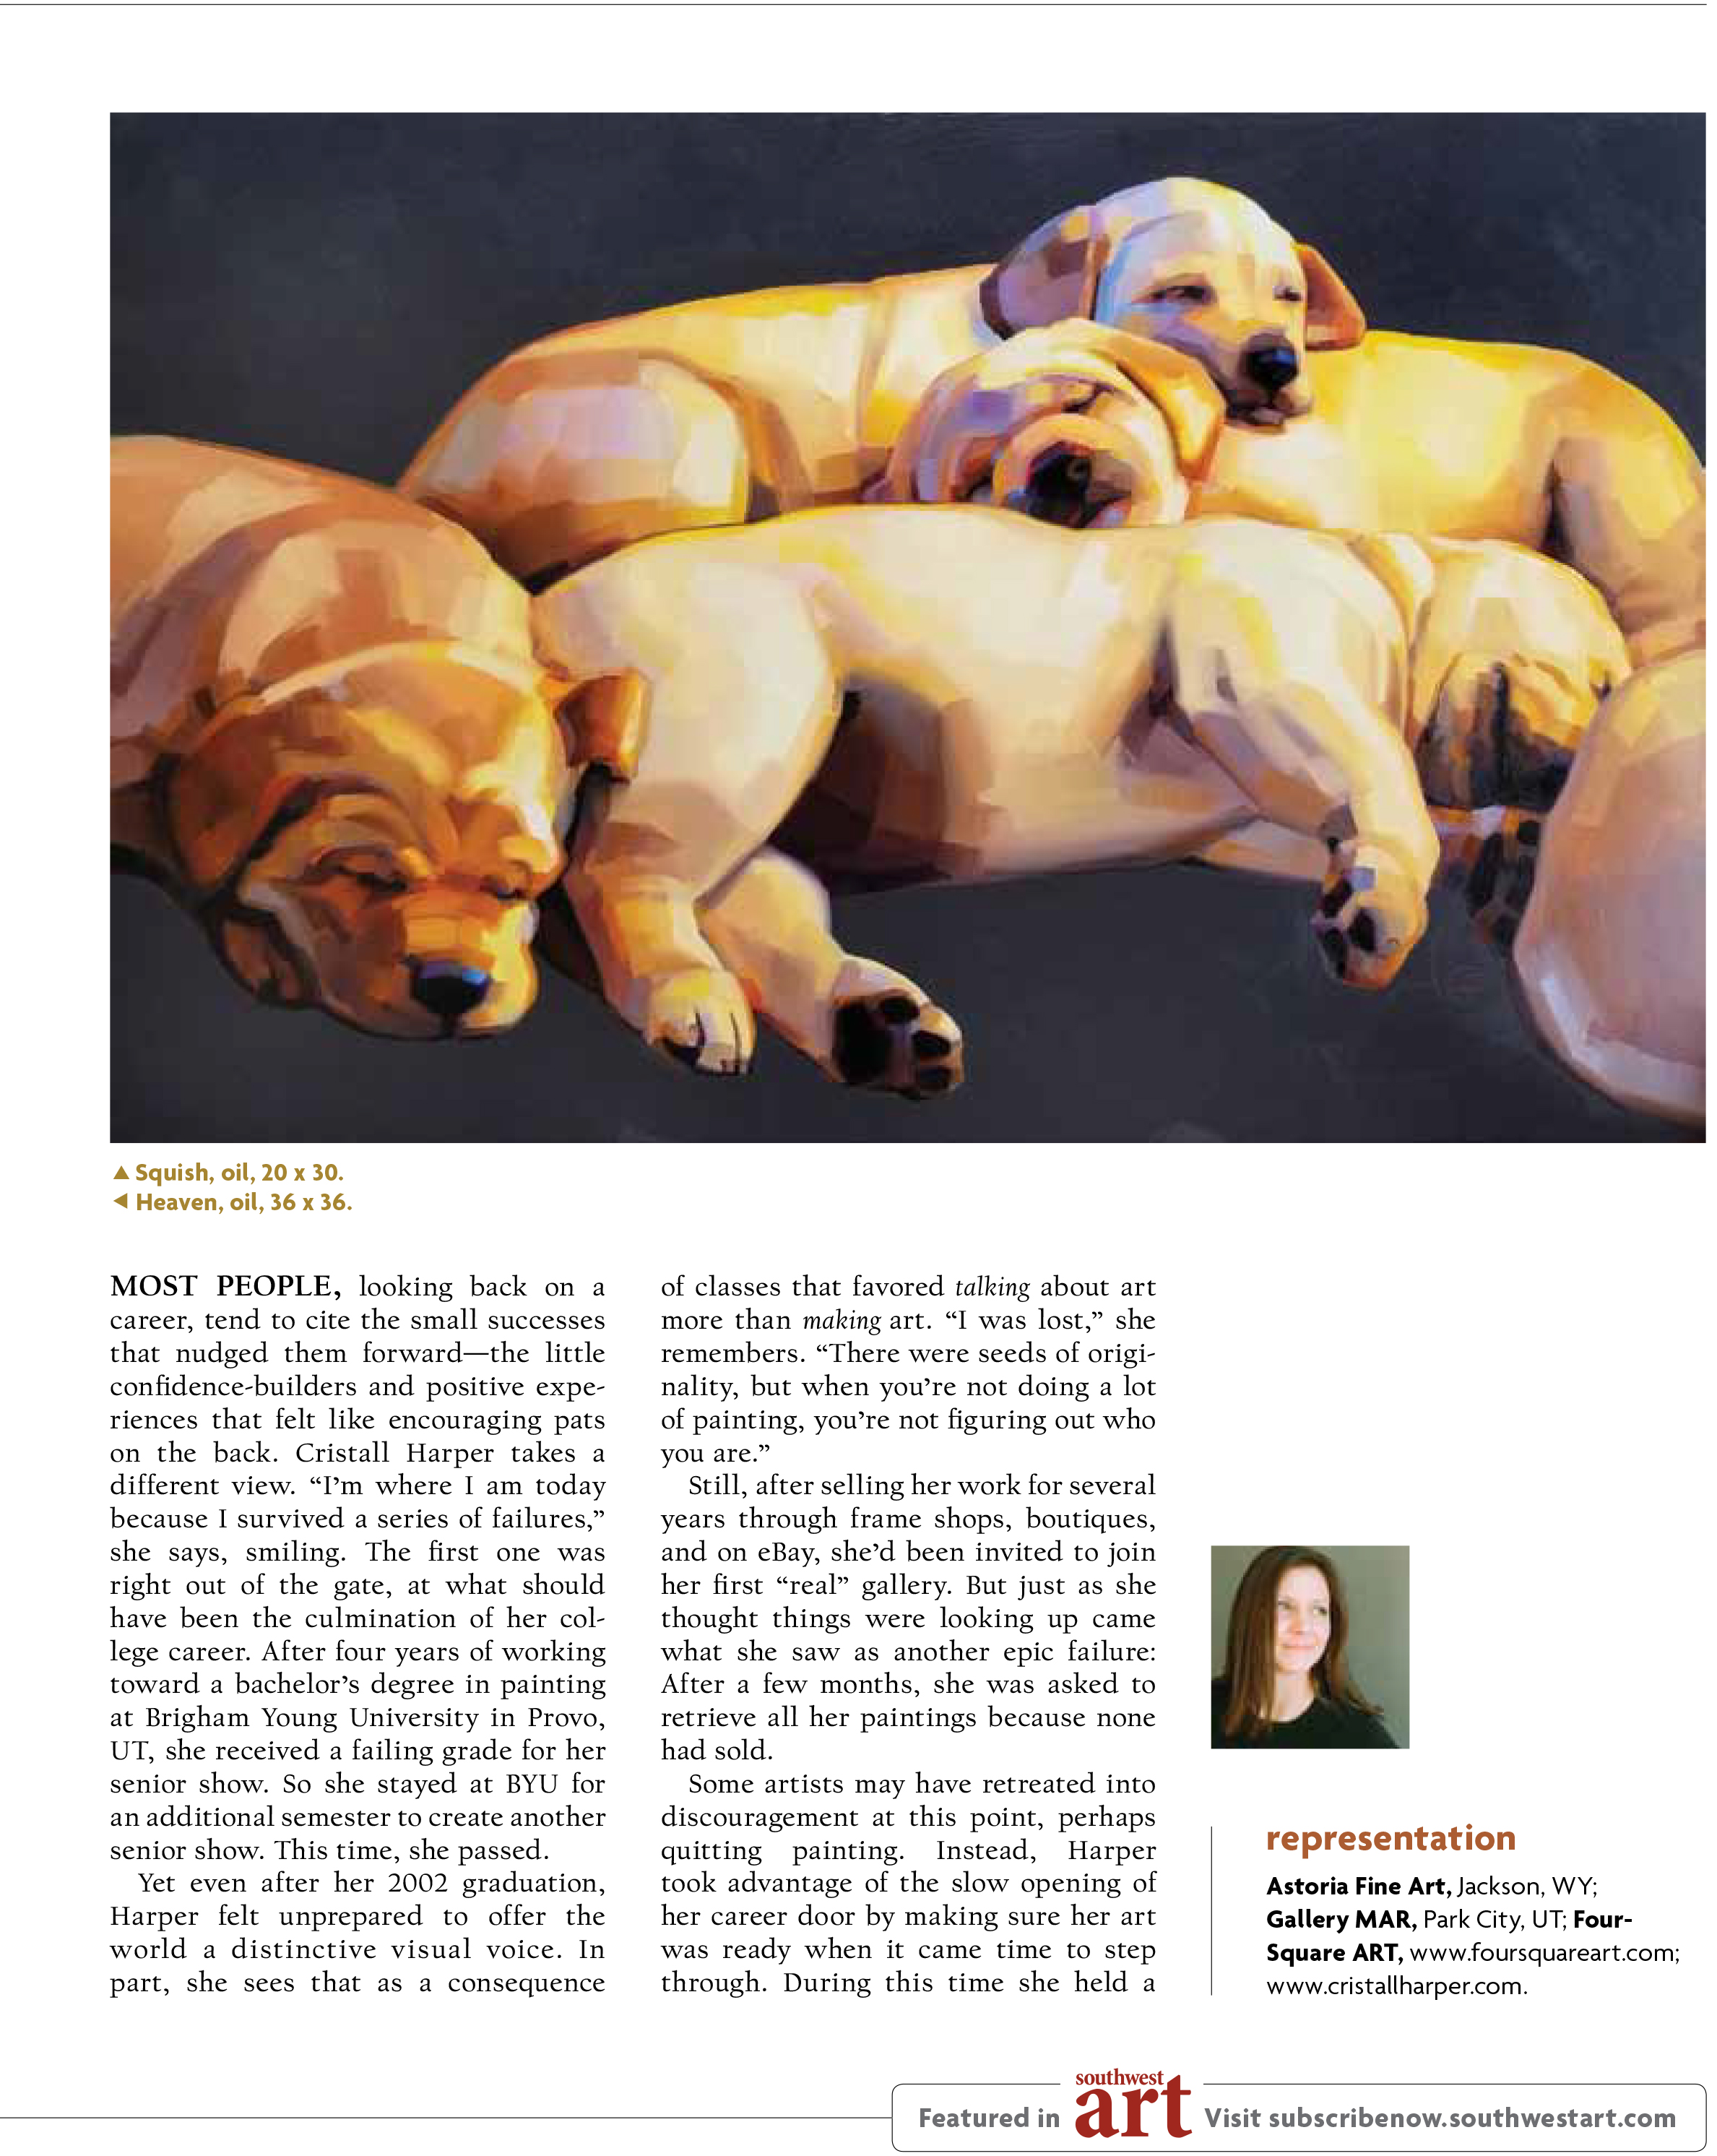 Cristall Harper in Southwest Art Magazine